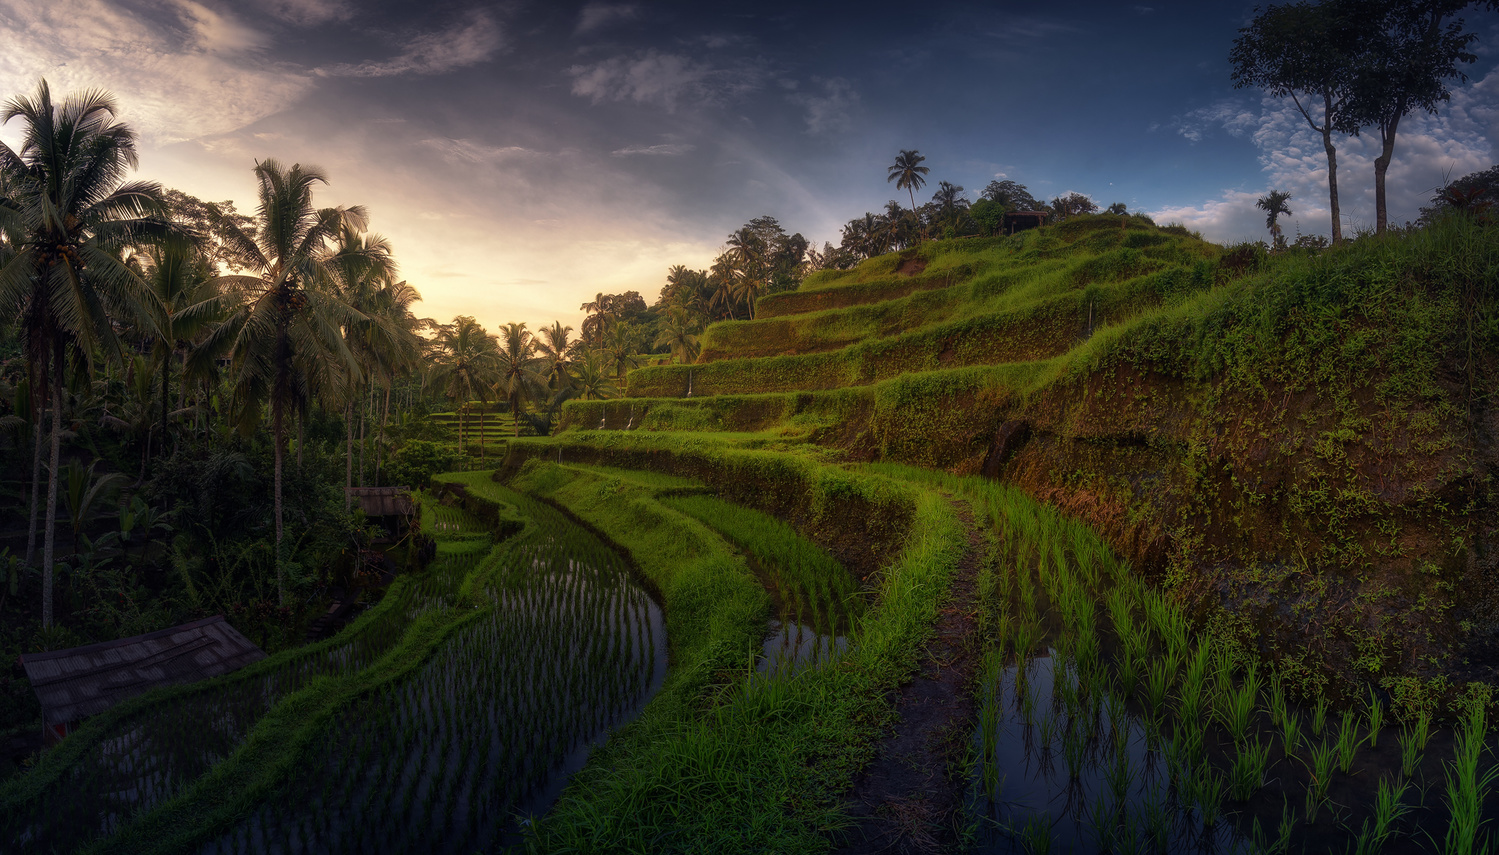 Tegallalan rice terrace by jabi sanz